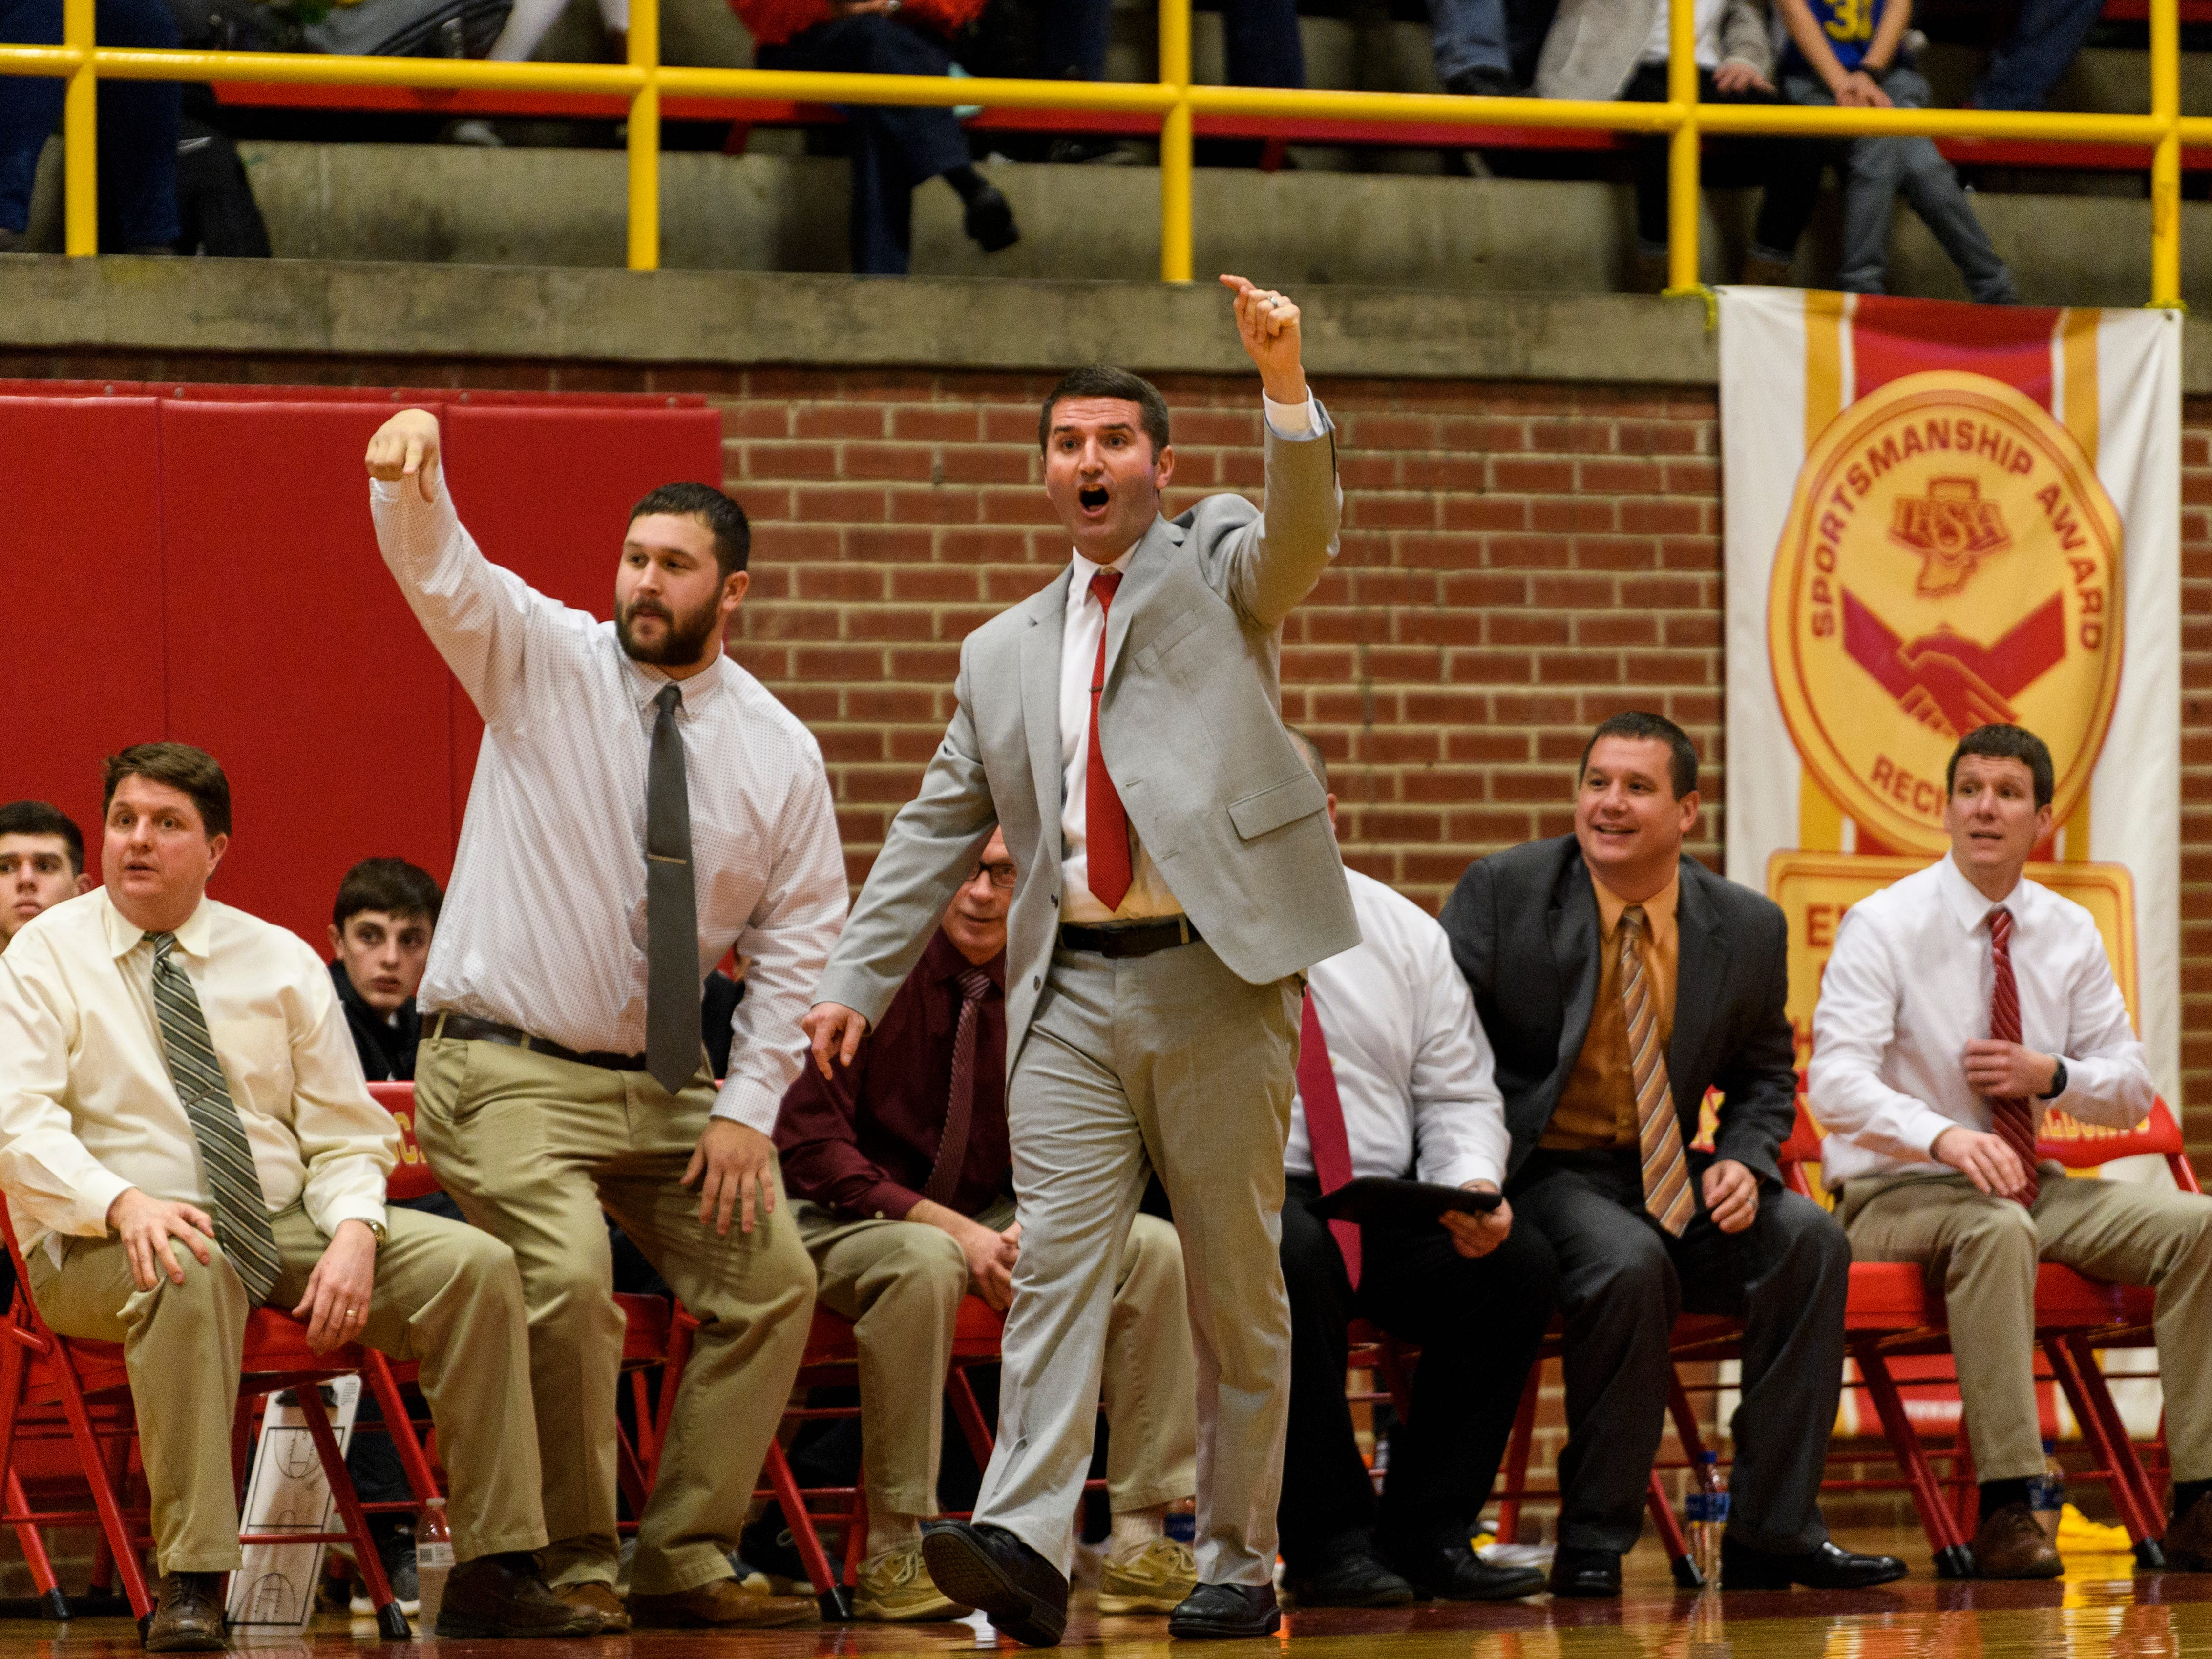 Mater Dei Head Coach Kurt Wildeman, center, and his coaching staff react to a foul call made against the Boonville Pioneers at Mater Dei High School in Evansville, Ind., Saturday, Jan. 5, 2019. The Wildcats defeated the Pioneers, 93-65.